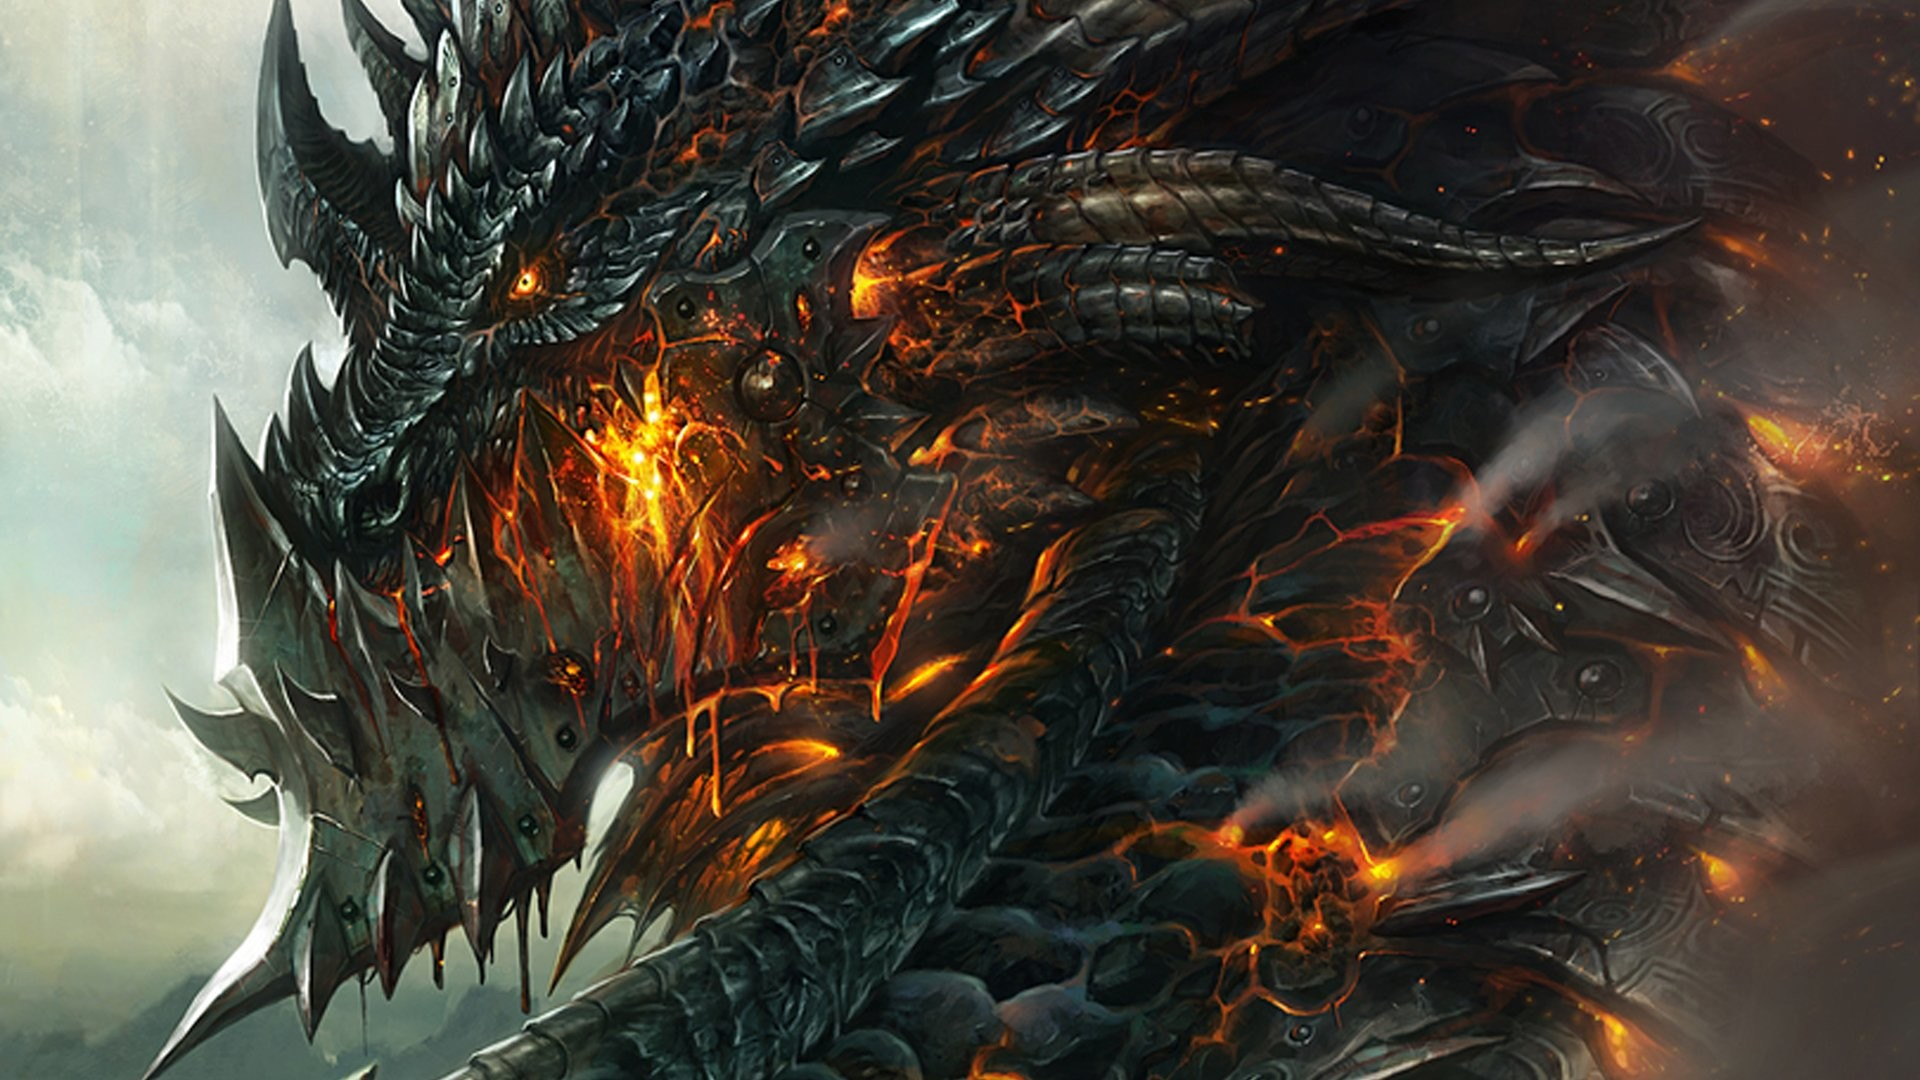 1920x1080 Awesome Dragons